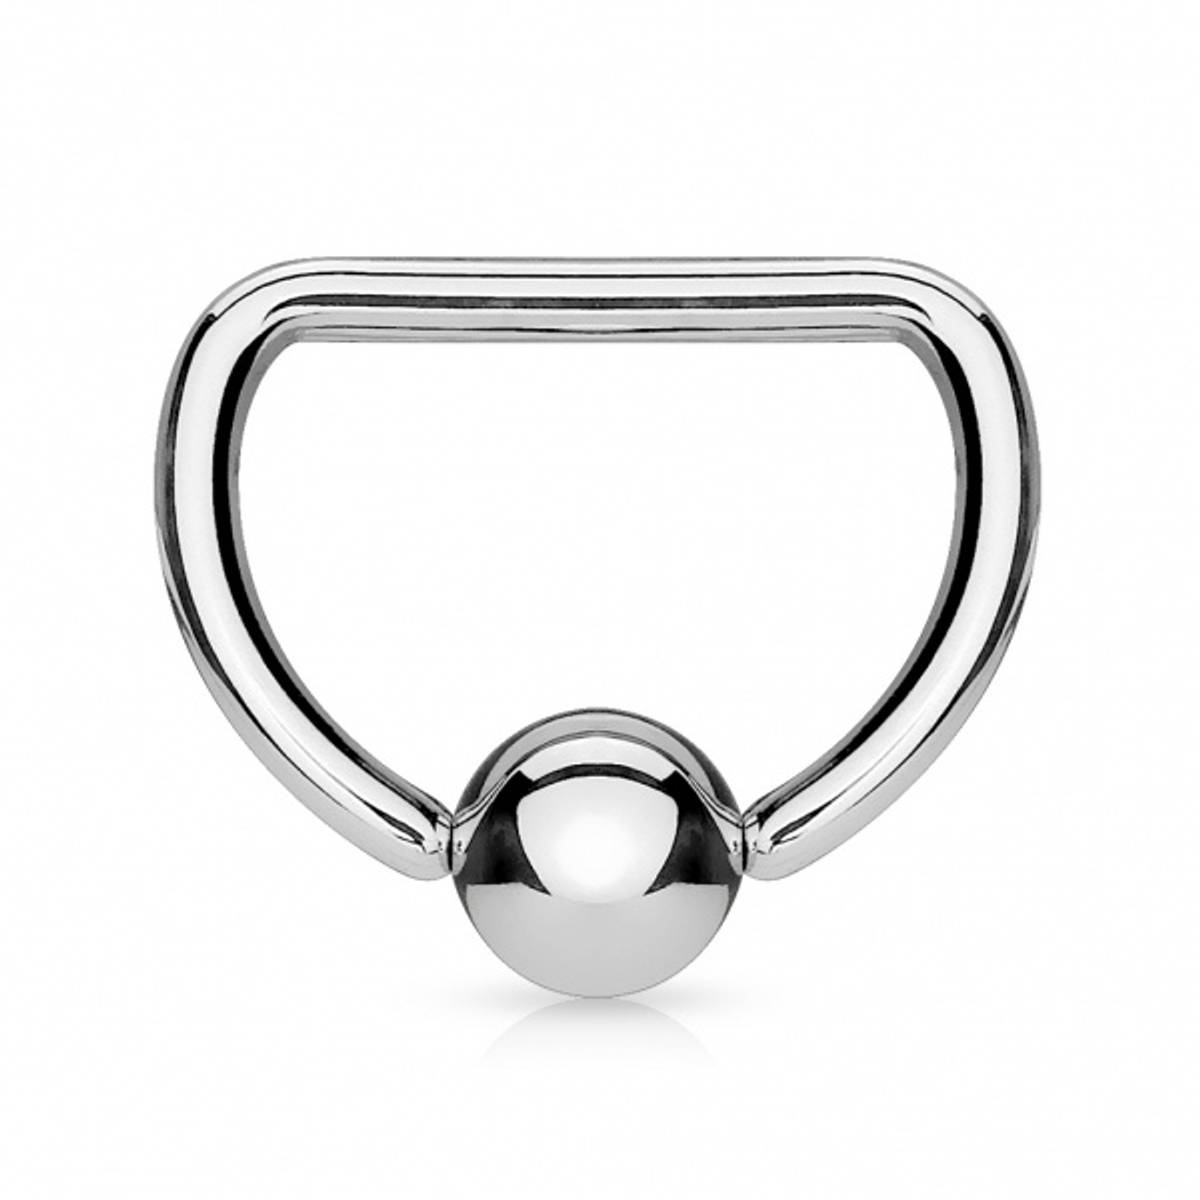 D Shaped Bcr Ring